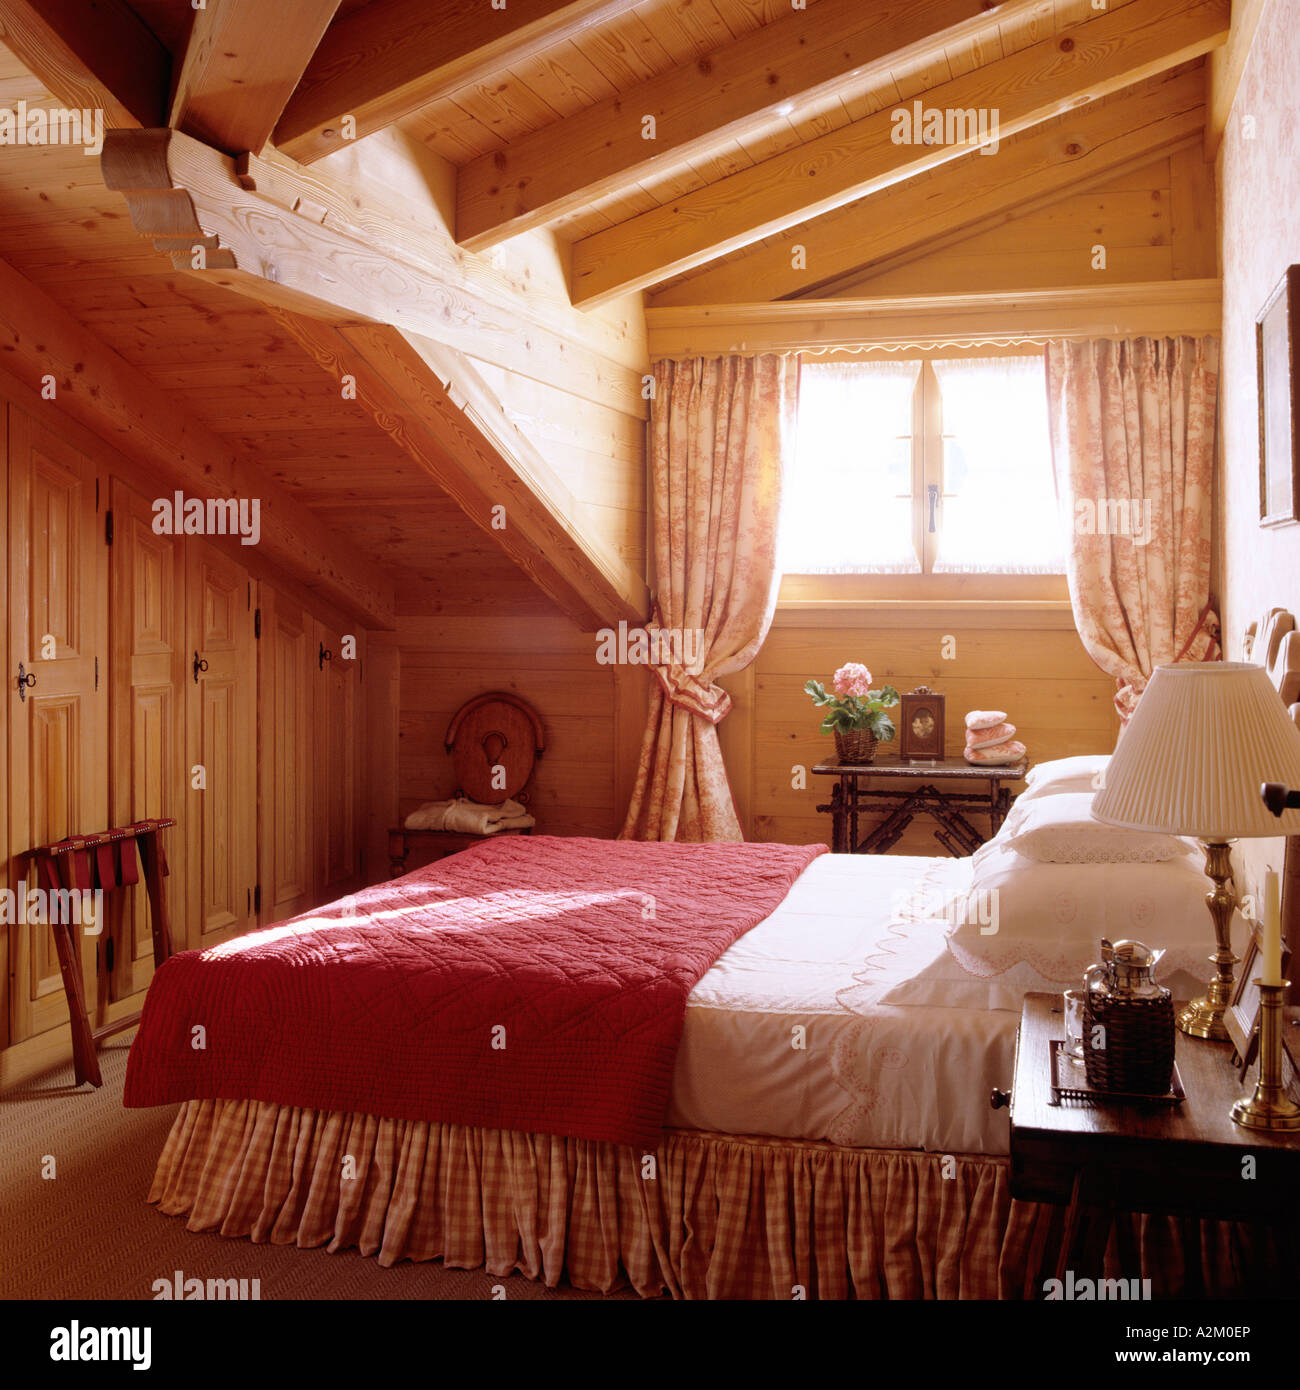 Bedroom with beamed ceiling in a traditional chalet in Switzerland Stock Photo